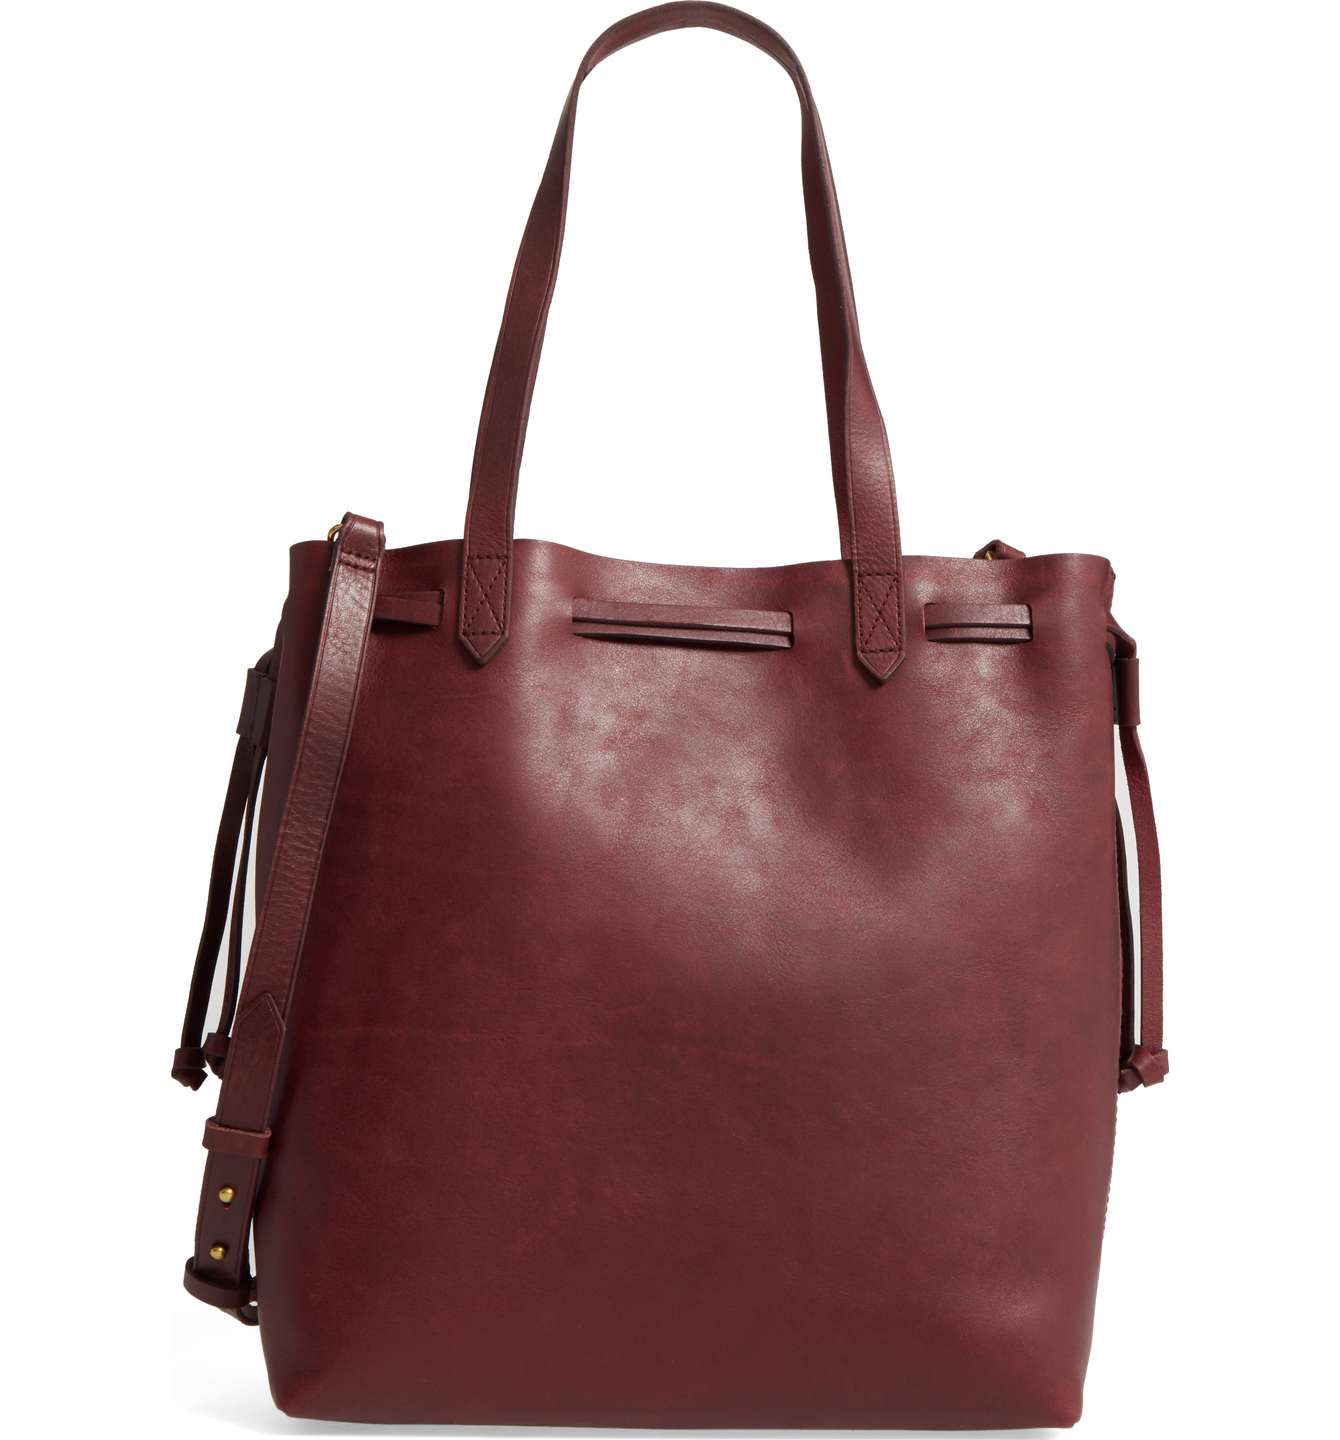 Burgundy Leather Tote - Burgundy is the new neutral! Clean, modern and completely unfussy, this roomy leather tote is updated with a drawstring closure and includes a convenient optional strap for when you want to wear the style hands-free.SPLURGE at $168! / STEAL for $64!